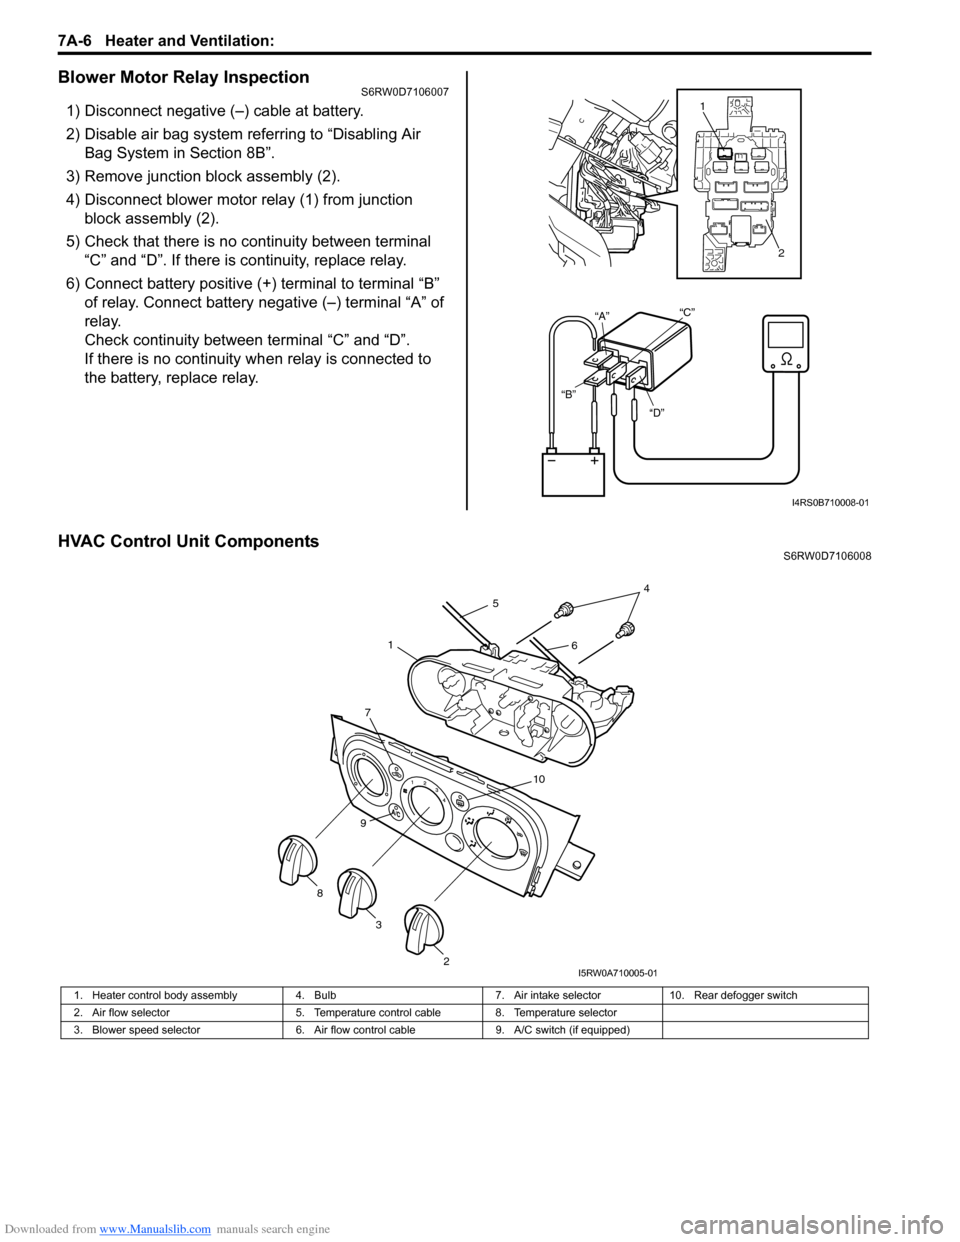 SUZUKI SX4 2006 1.G Service Workshop Manual